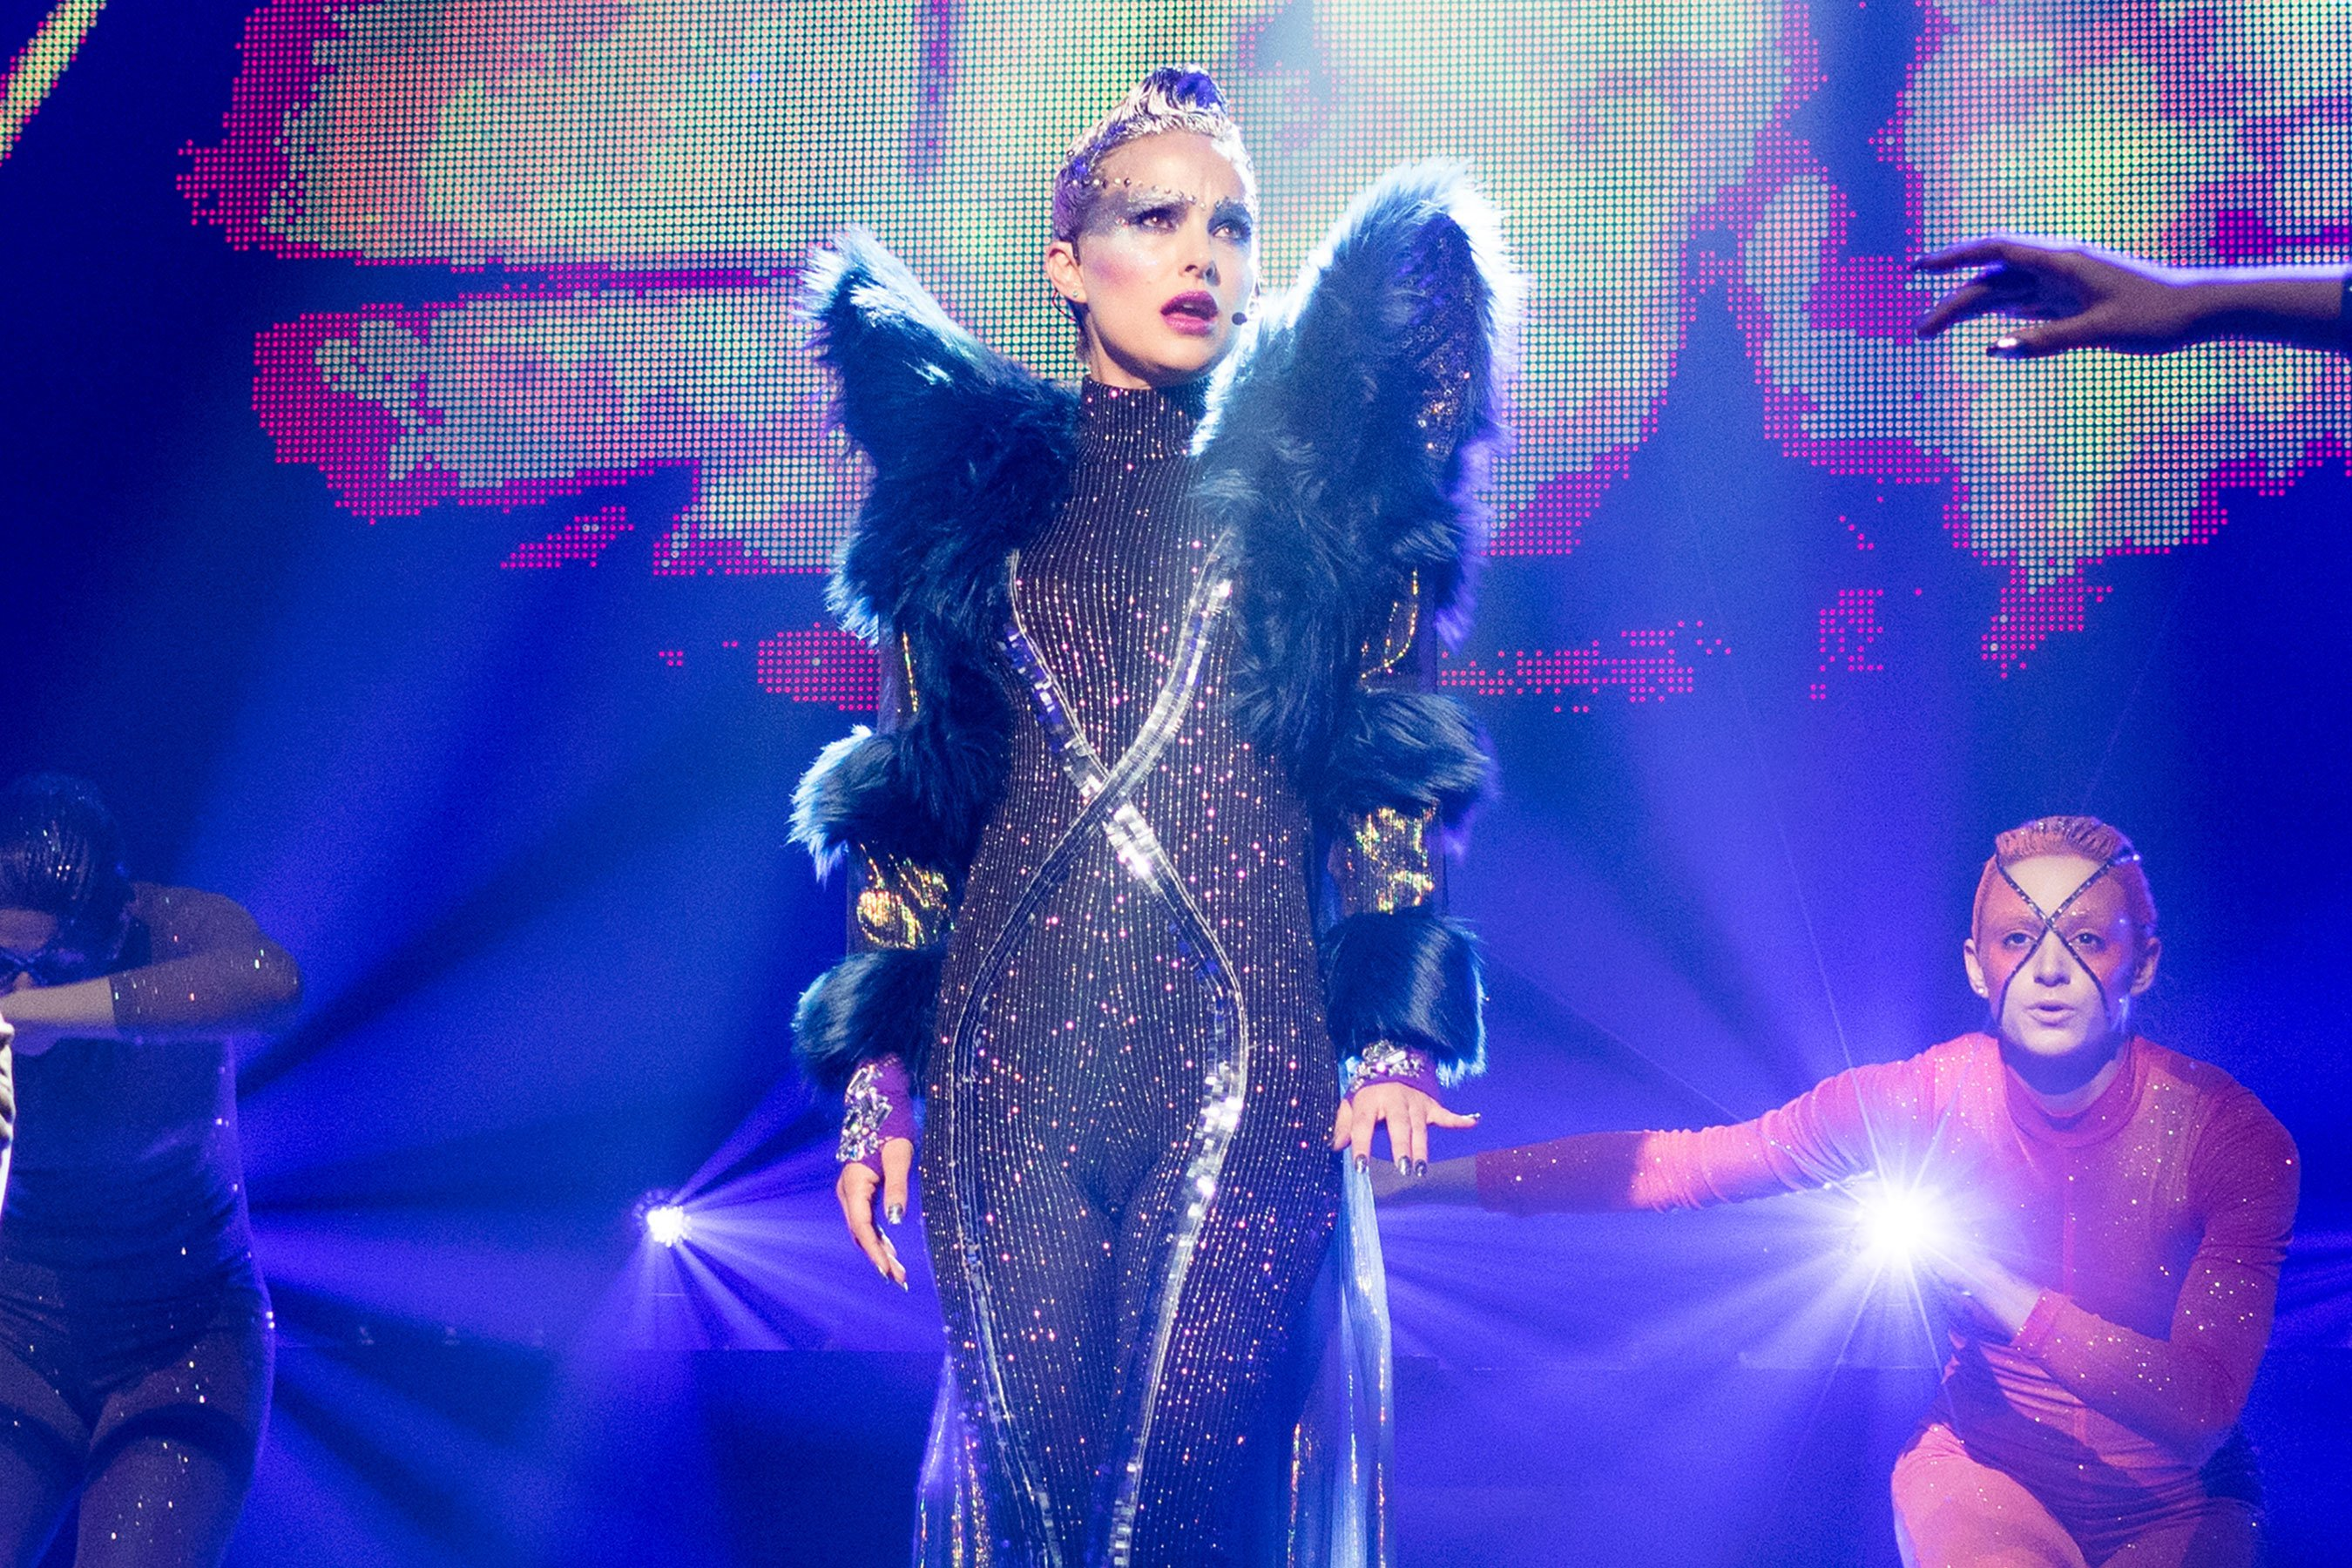 Natalie Portman sings Sia song Wrapped Up from Vox Lux